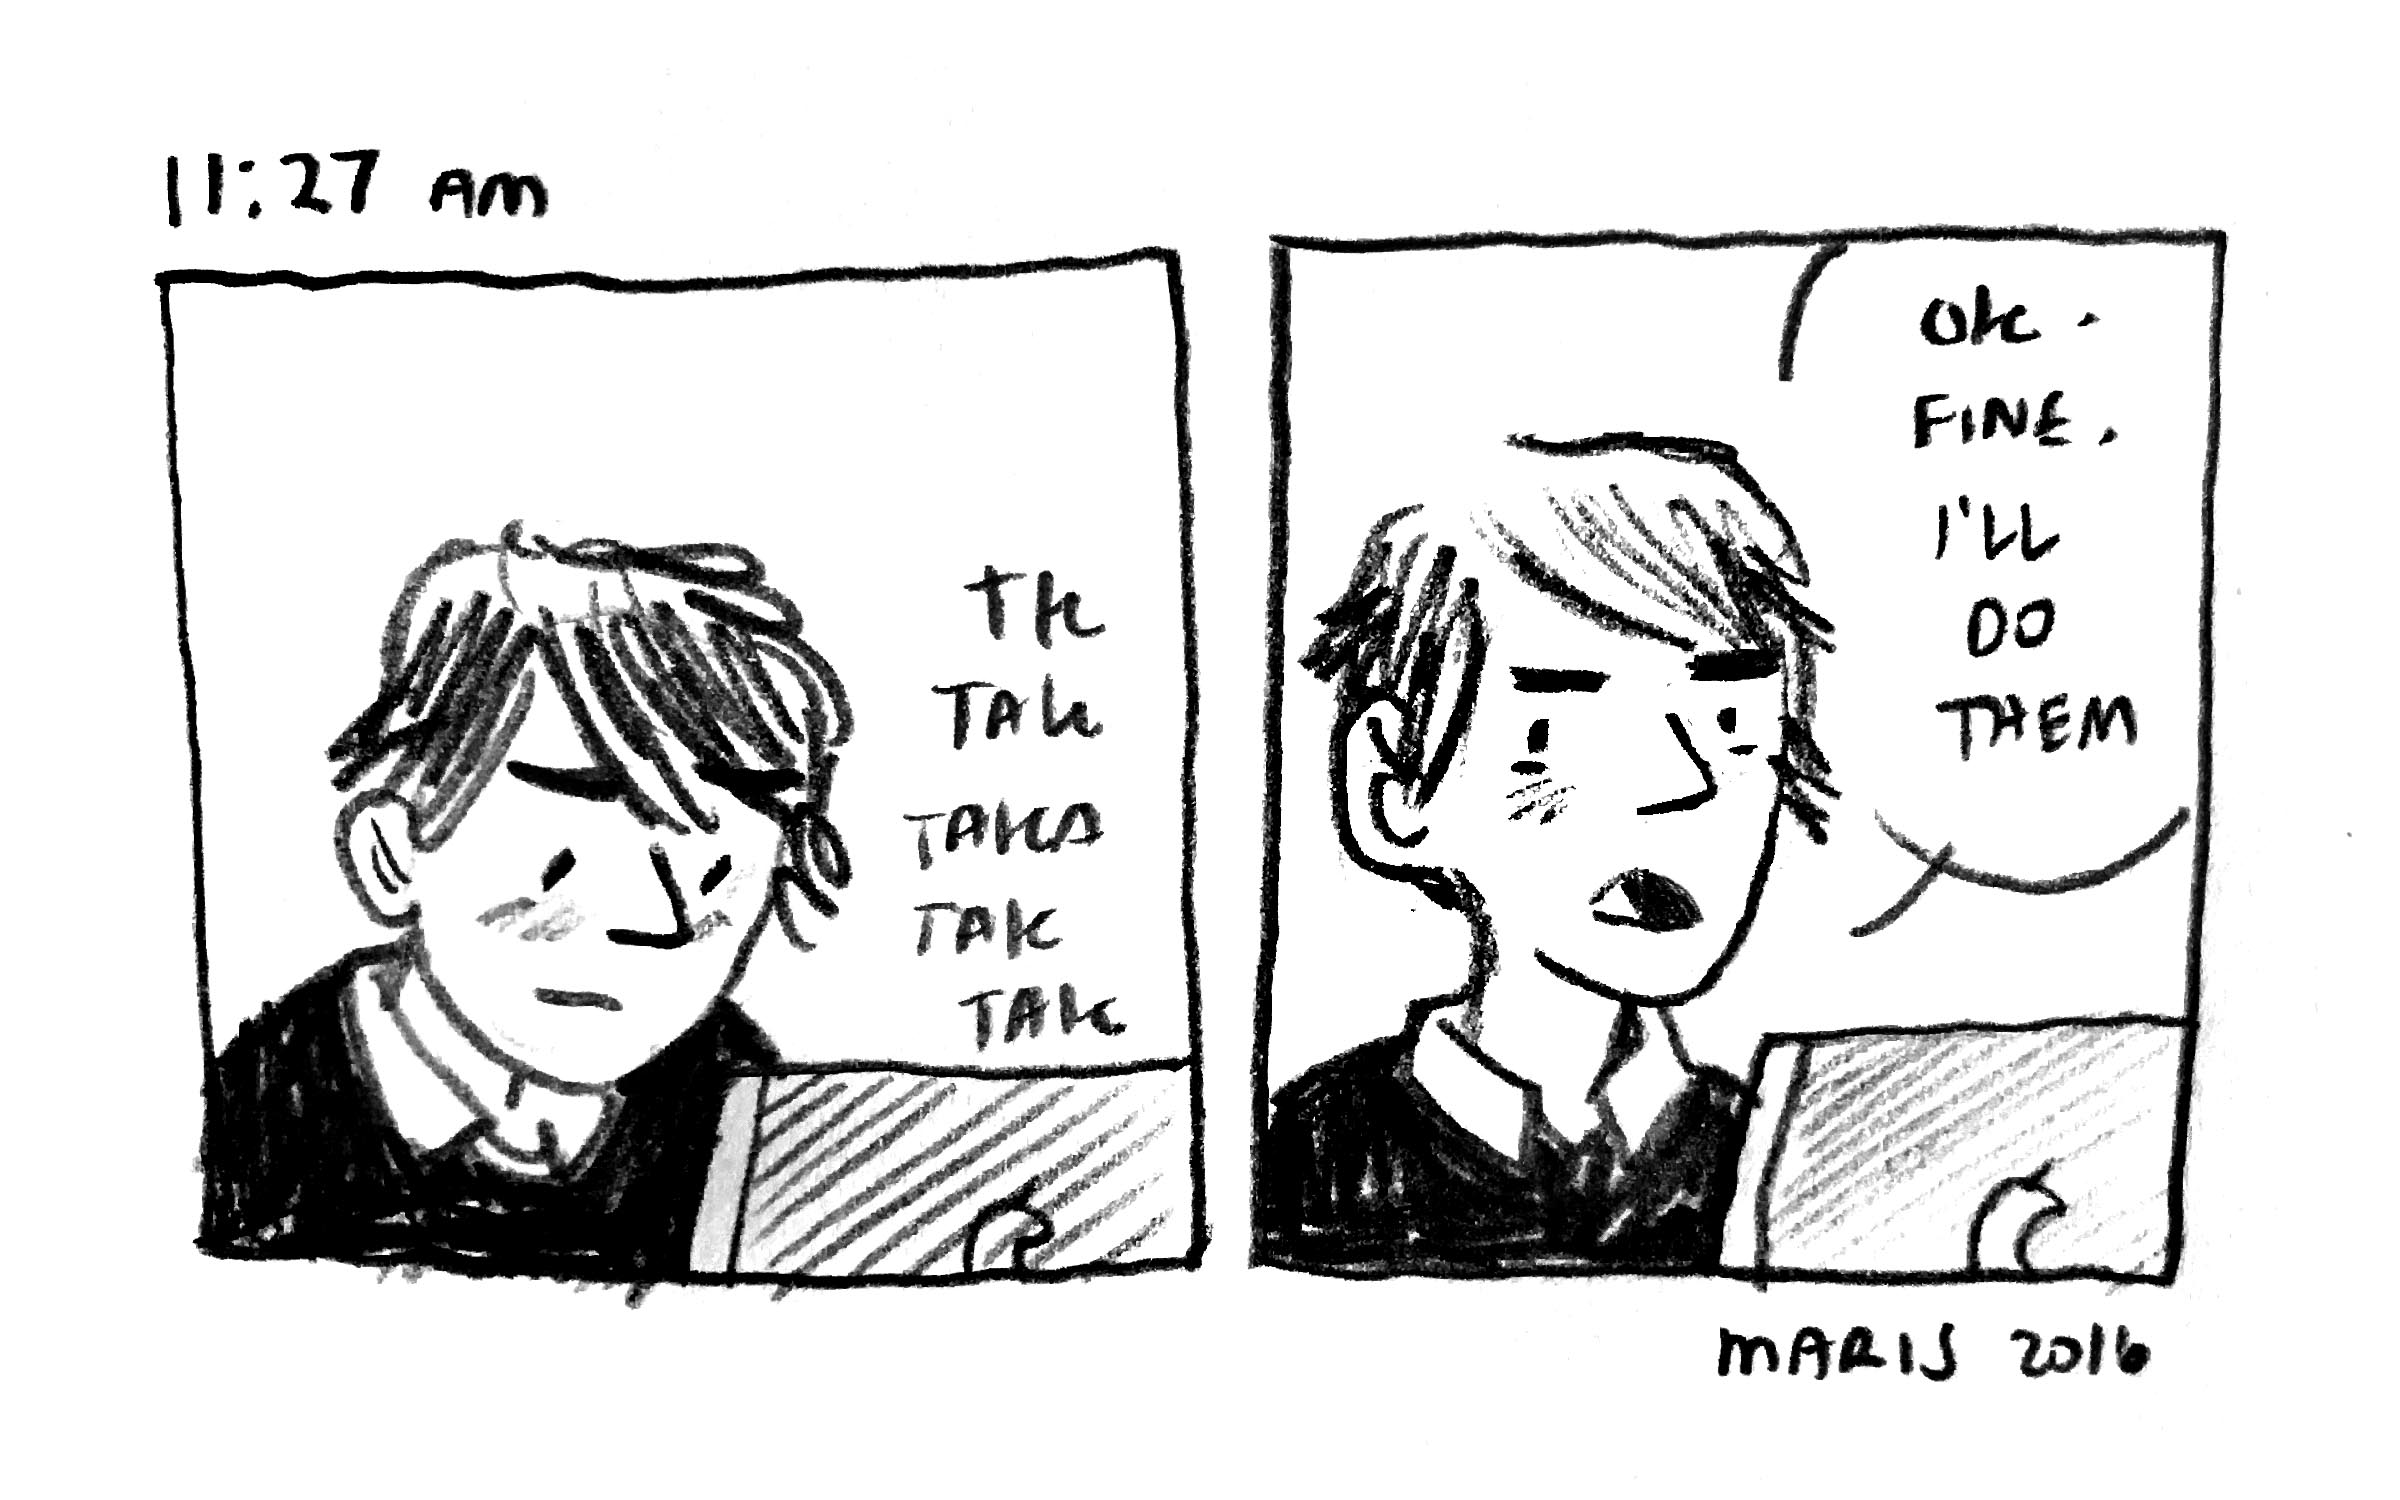 07_mw_2016_hourlies.jpg